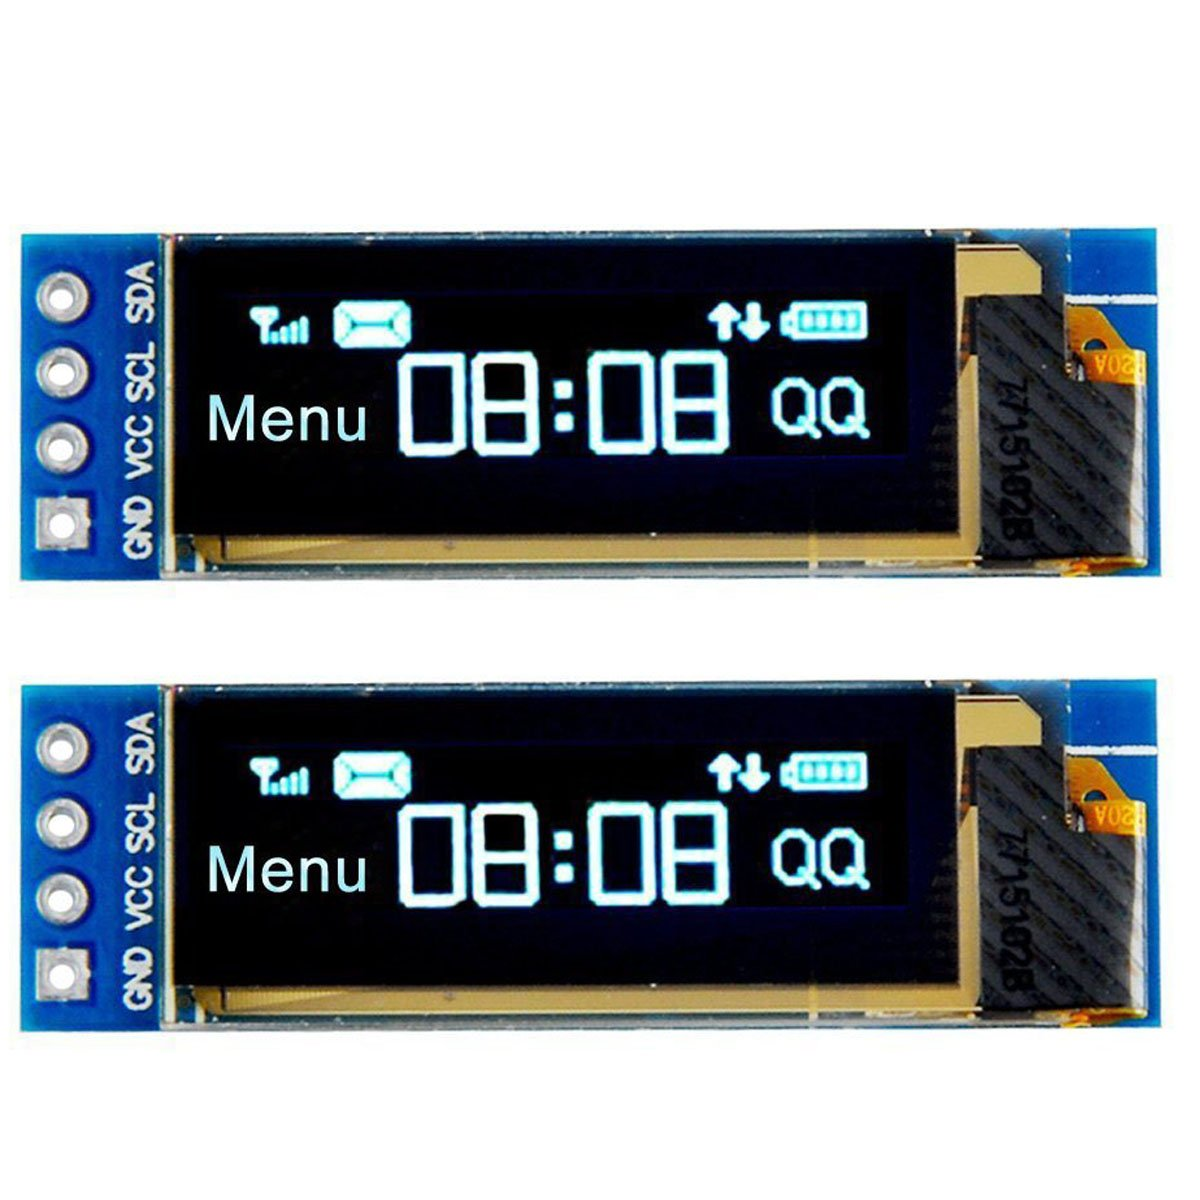 MakerFocus 2pcs I2C OLED Display Module 0 91 Inch I2C SSD1306 OLED Display  Module Blue I2C OLED Screen Driver DC 3 3V~5V for Arduino